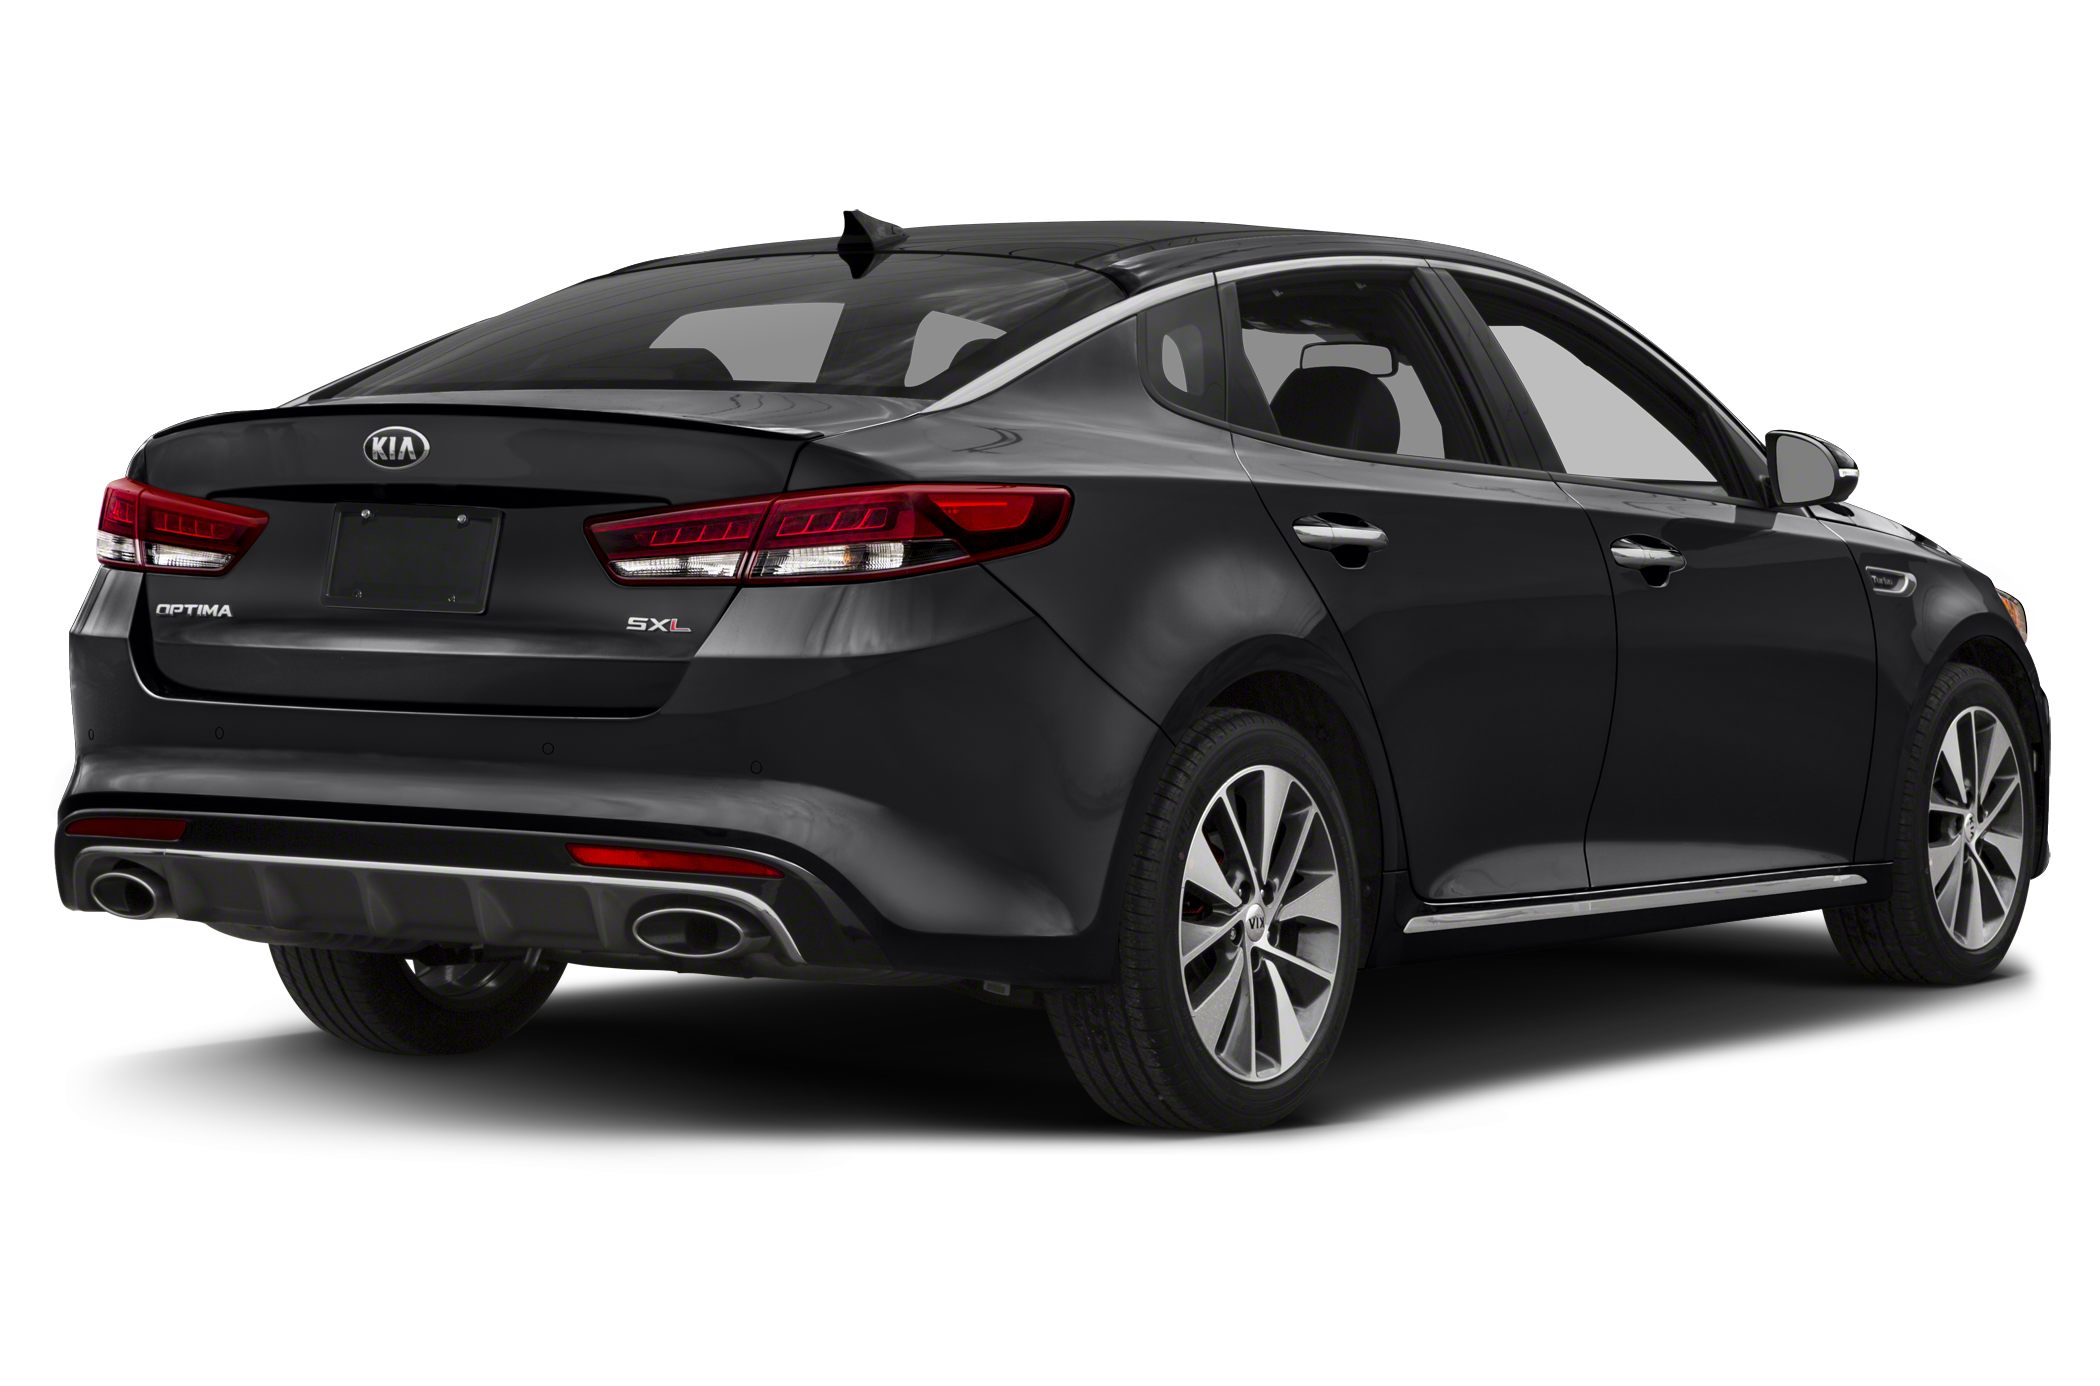 2018 KIA OPTIMA SX TURBO